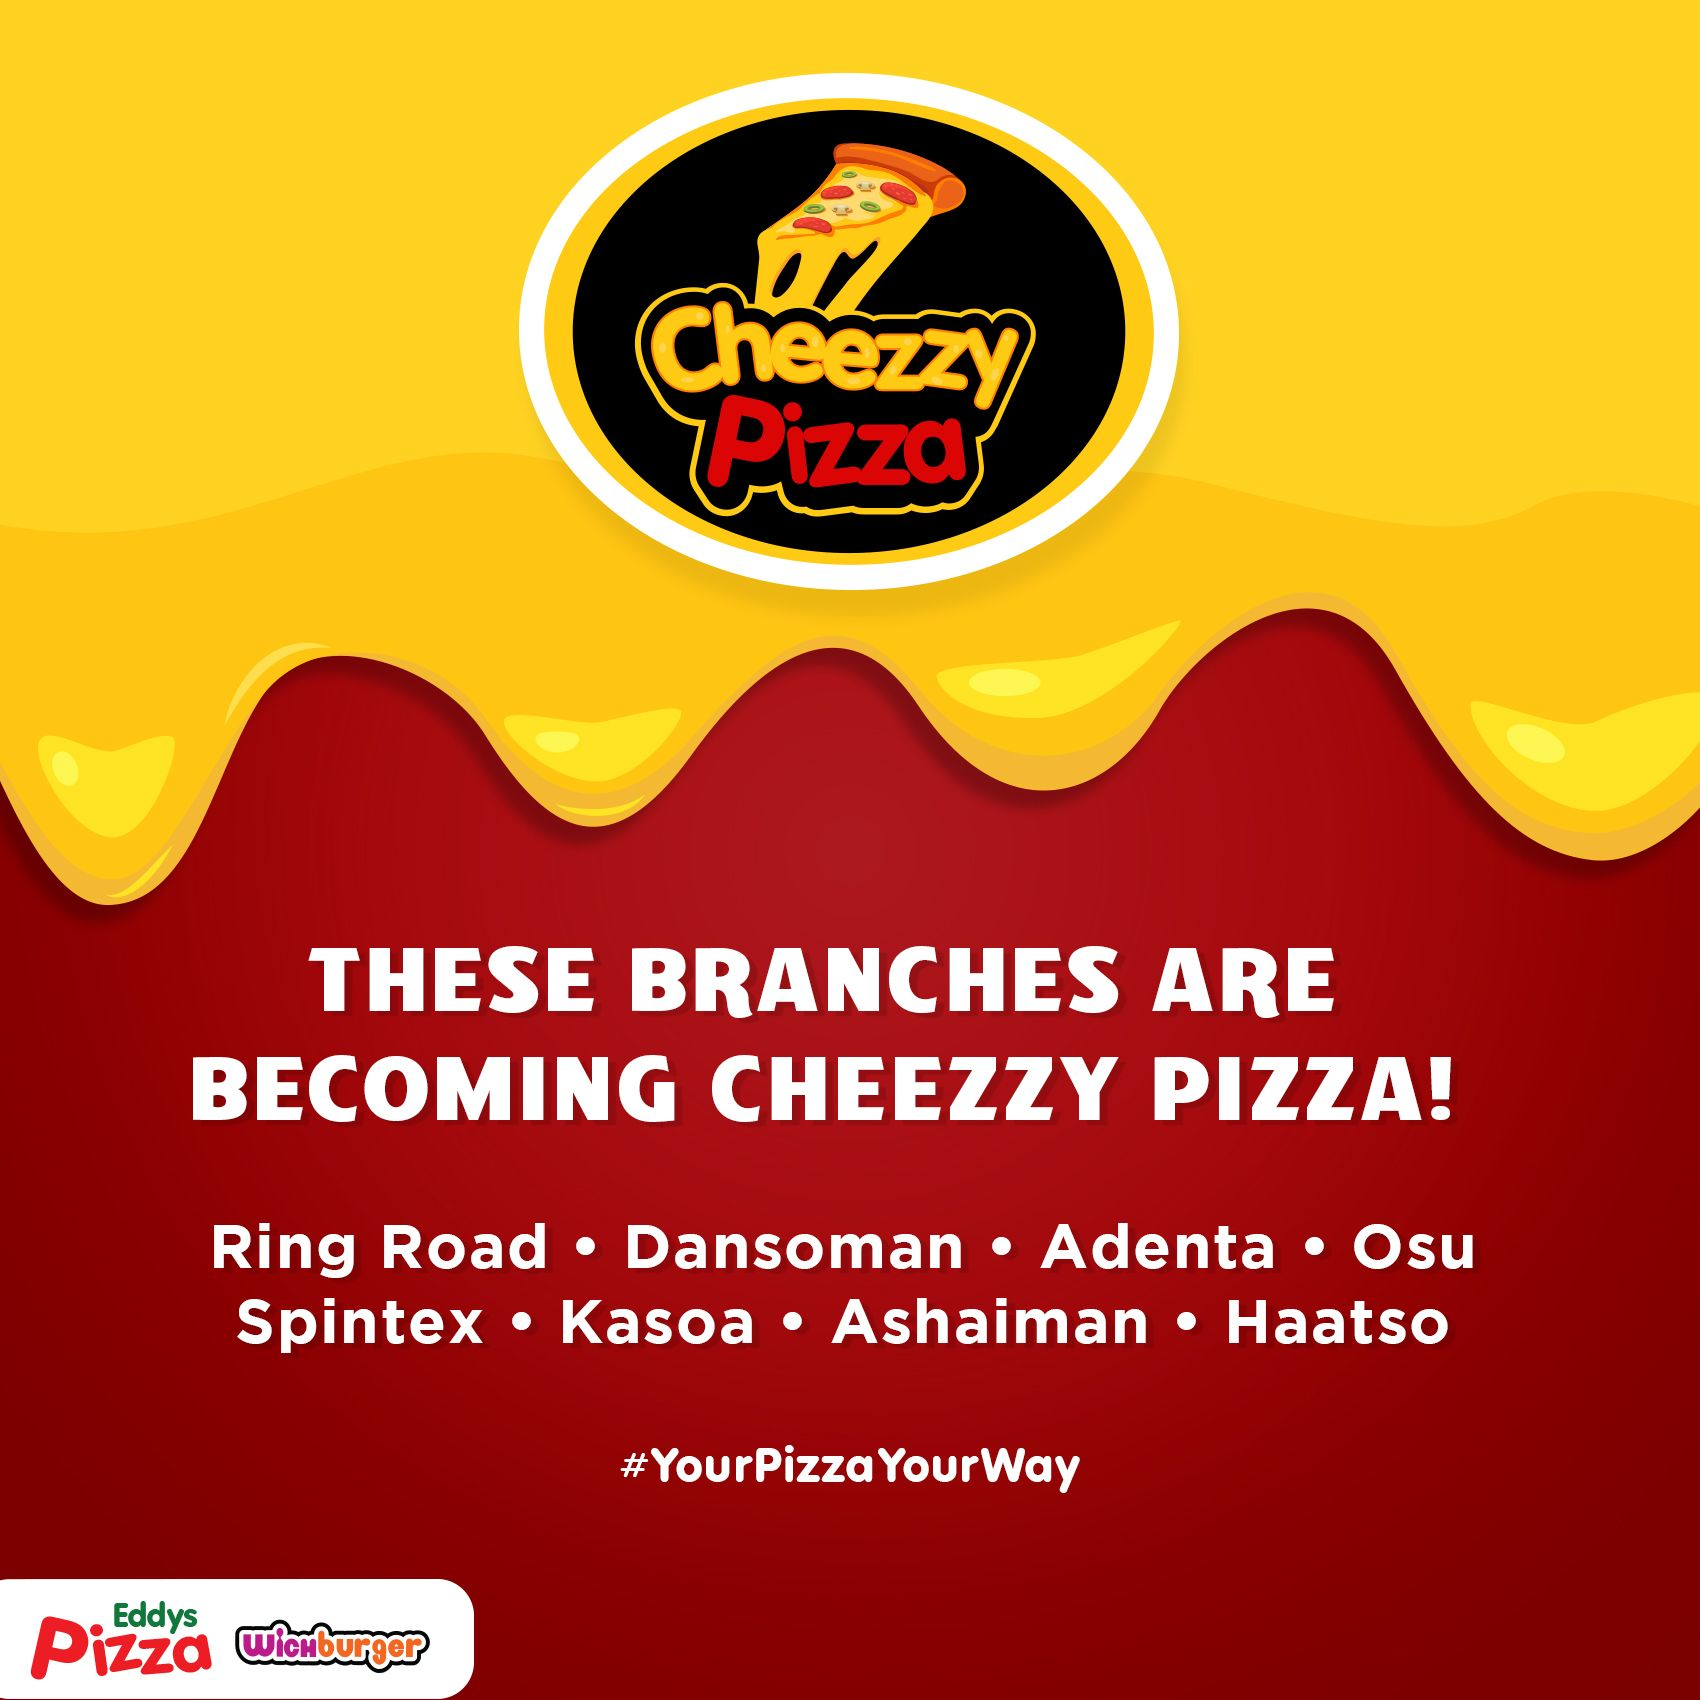 Cheezzy Pizza Branches